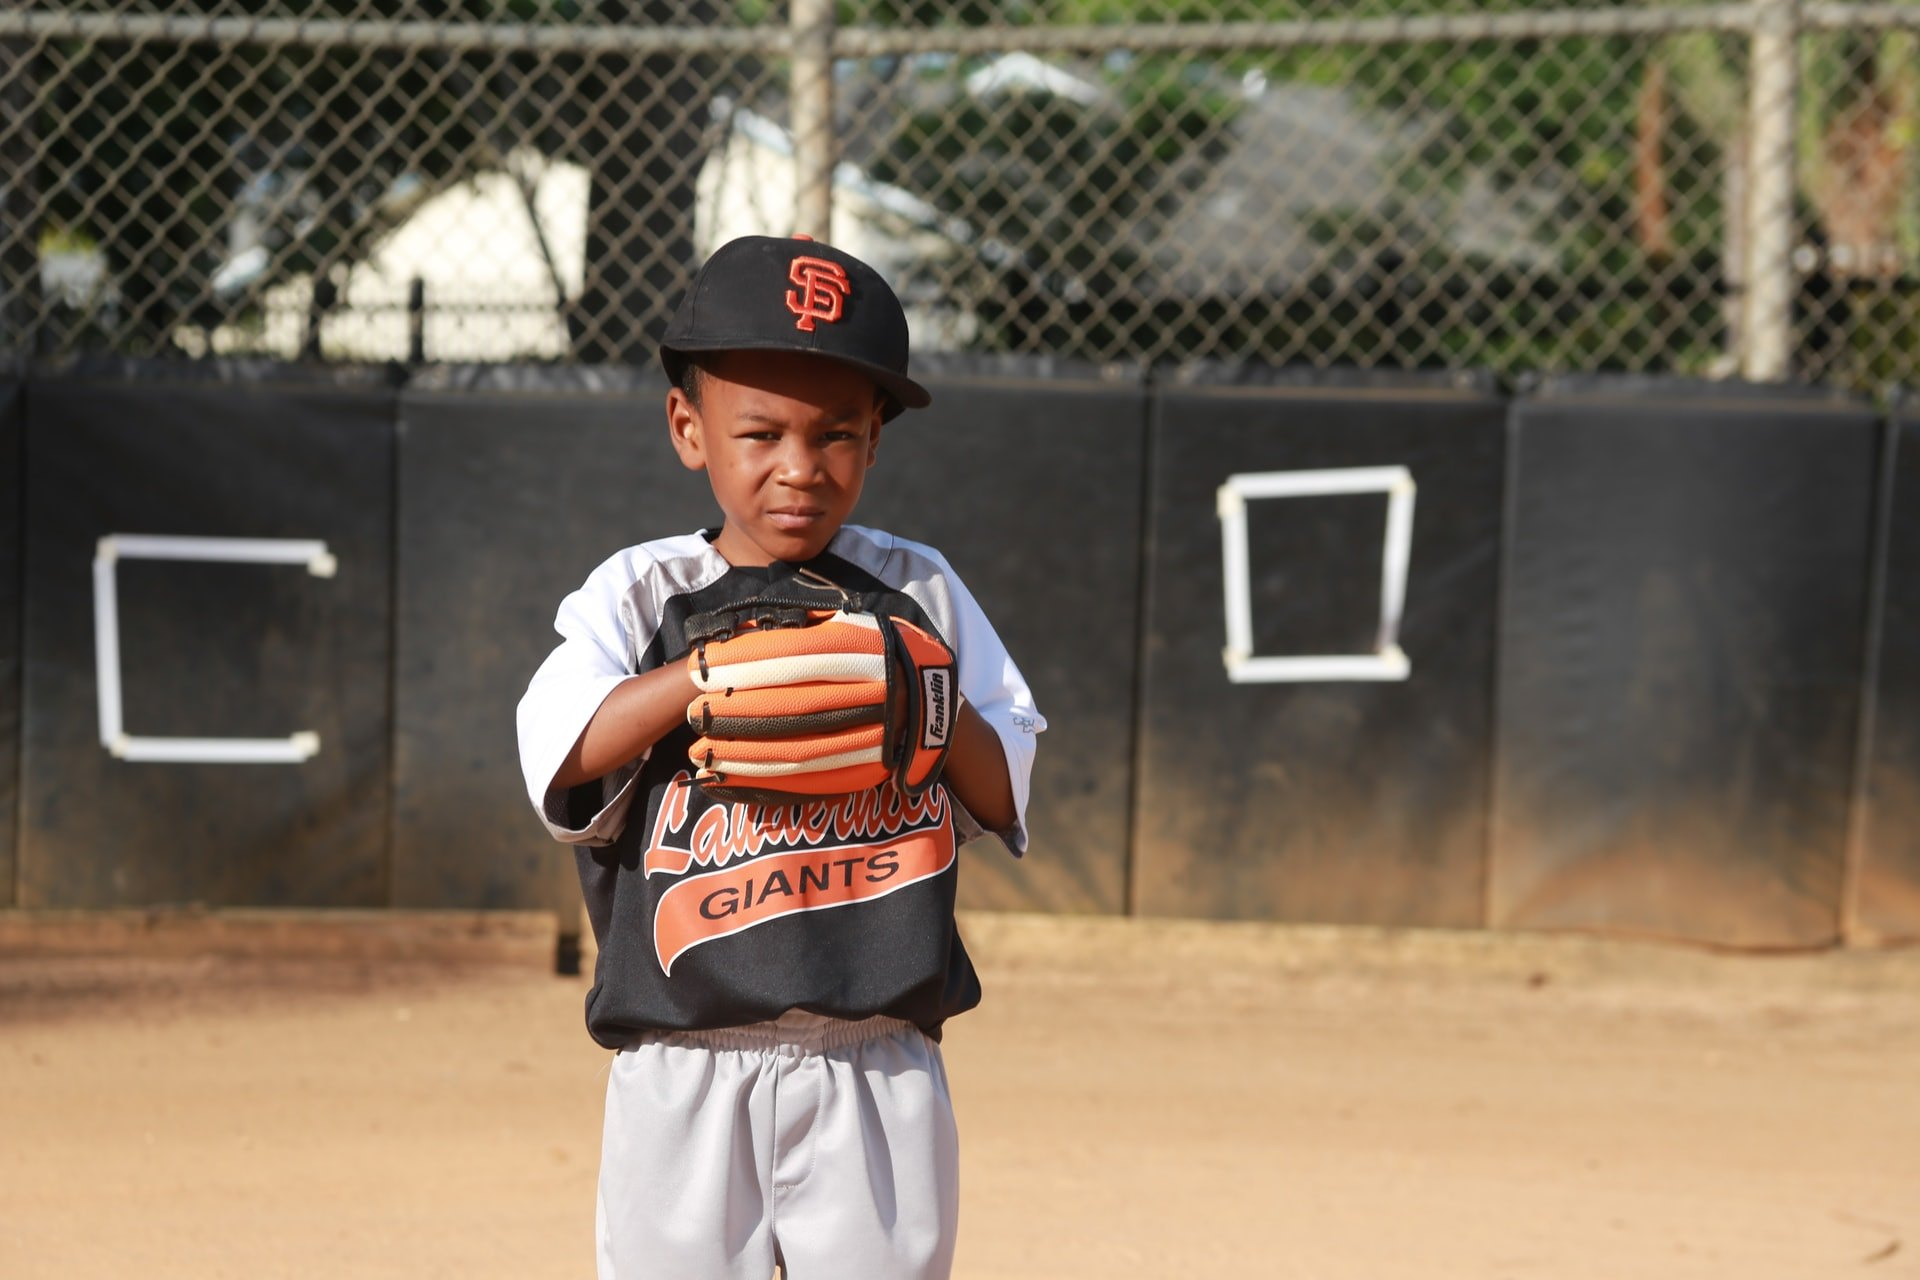 Children in Sports - Learn About the Most Famous Child Sports Prodigies